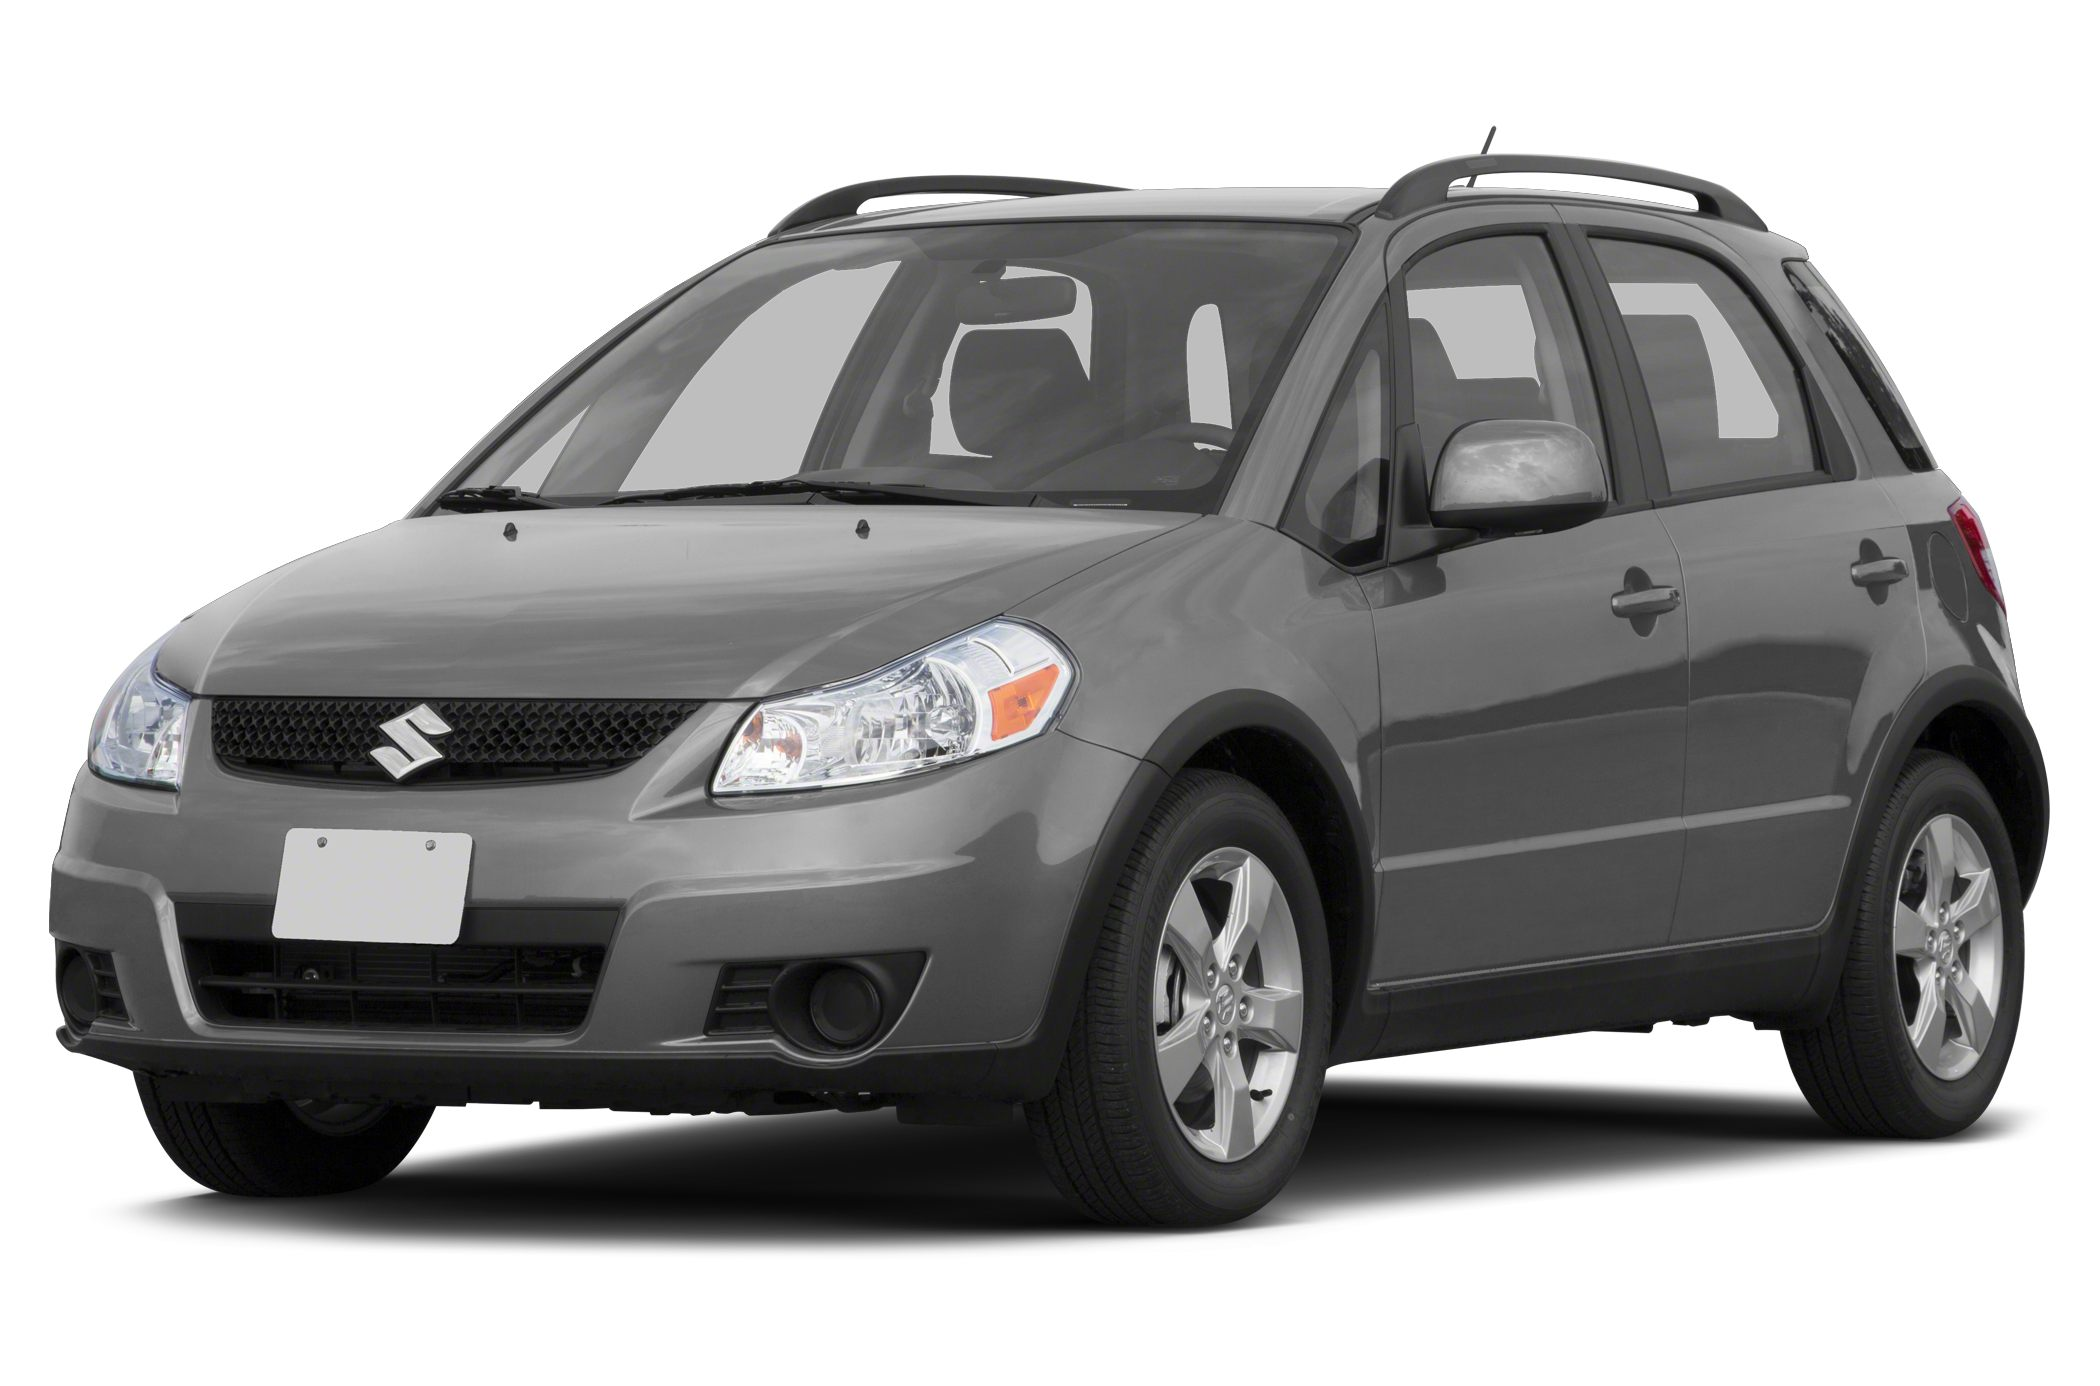 2010 Suzuki SX4